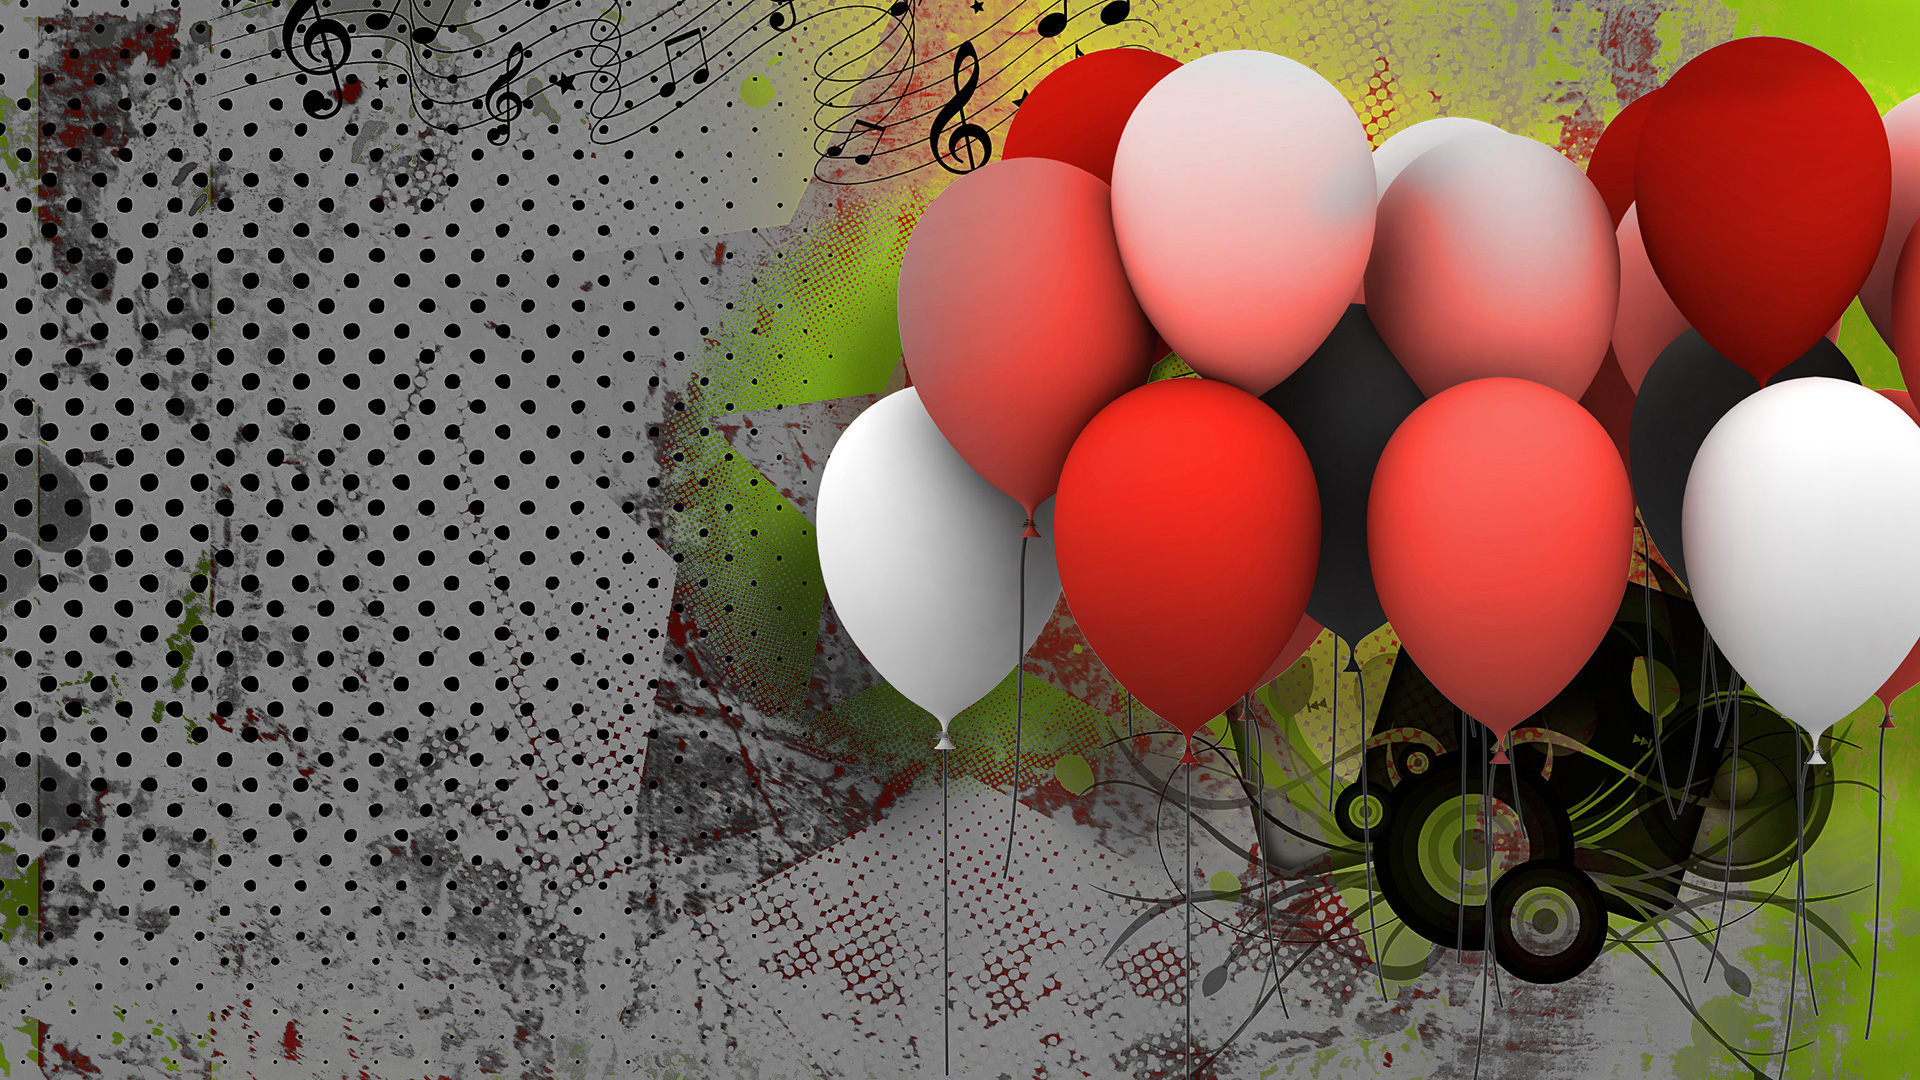 Cute balloons background download free